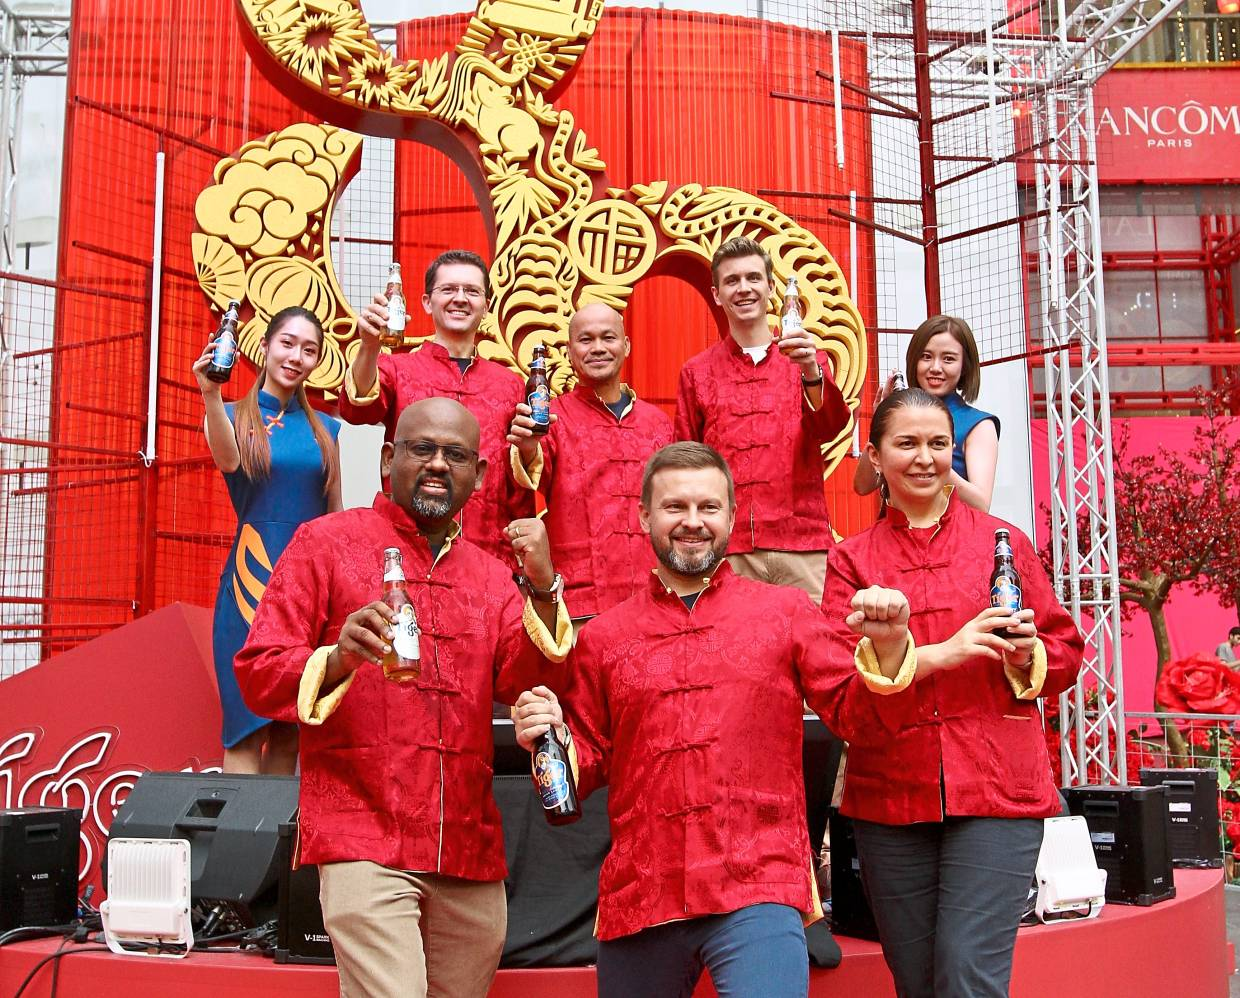 (Back row, from second left) Heineken Malaysia Bhd finance director Szilard Voros, Roland and marketing  director Pablo Chabot with (front row, from left) human resources director Kukarajan Kanagarajan, sales  director Vasily Baranov and supply chain director Salima Bekoeva at the launch of the Tiger Beer campaign.